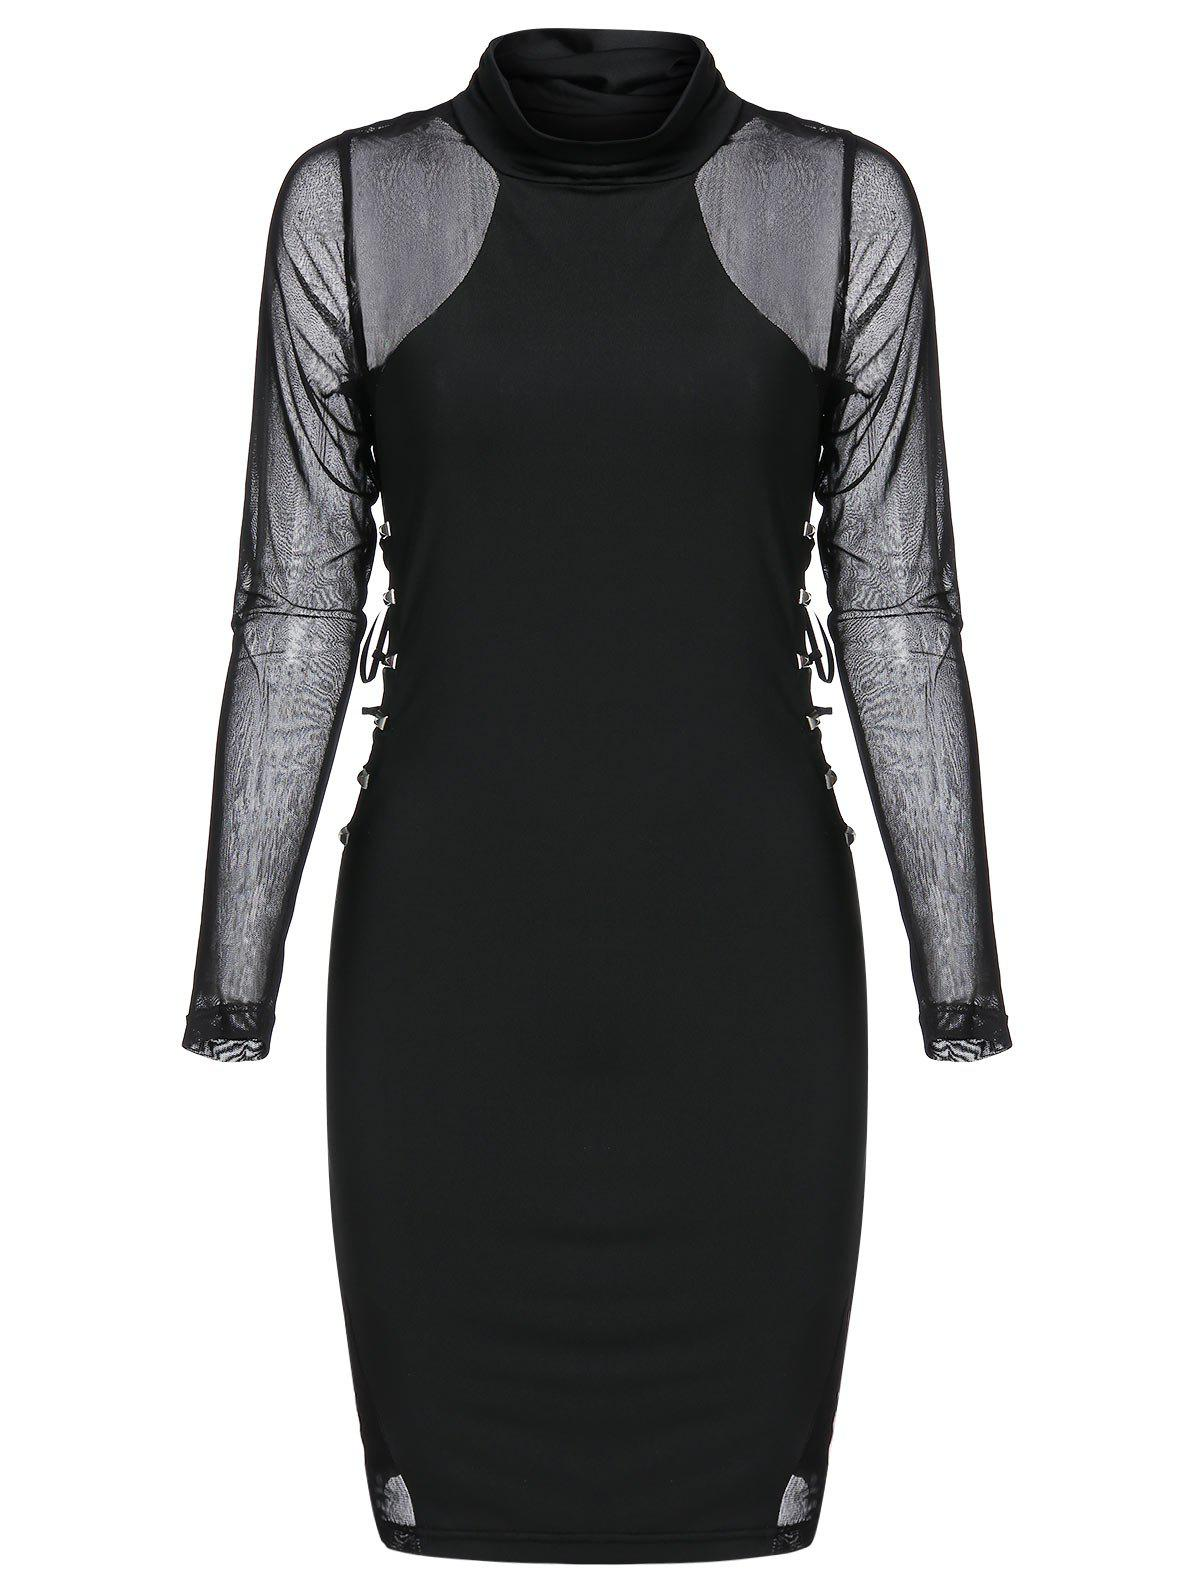 Rivet Embellished Mesh Insert Lace-up Gothic Bodycon Dress - BLACK XL